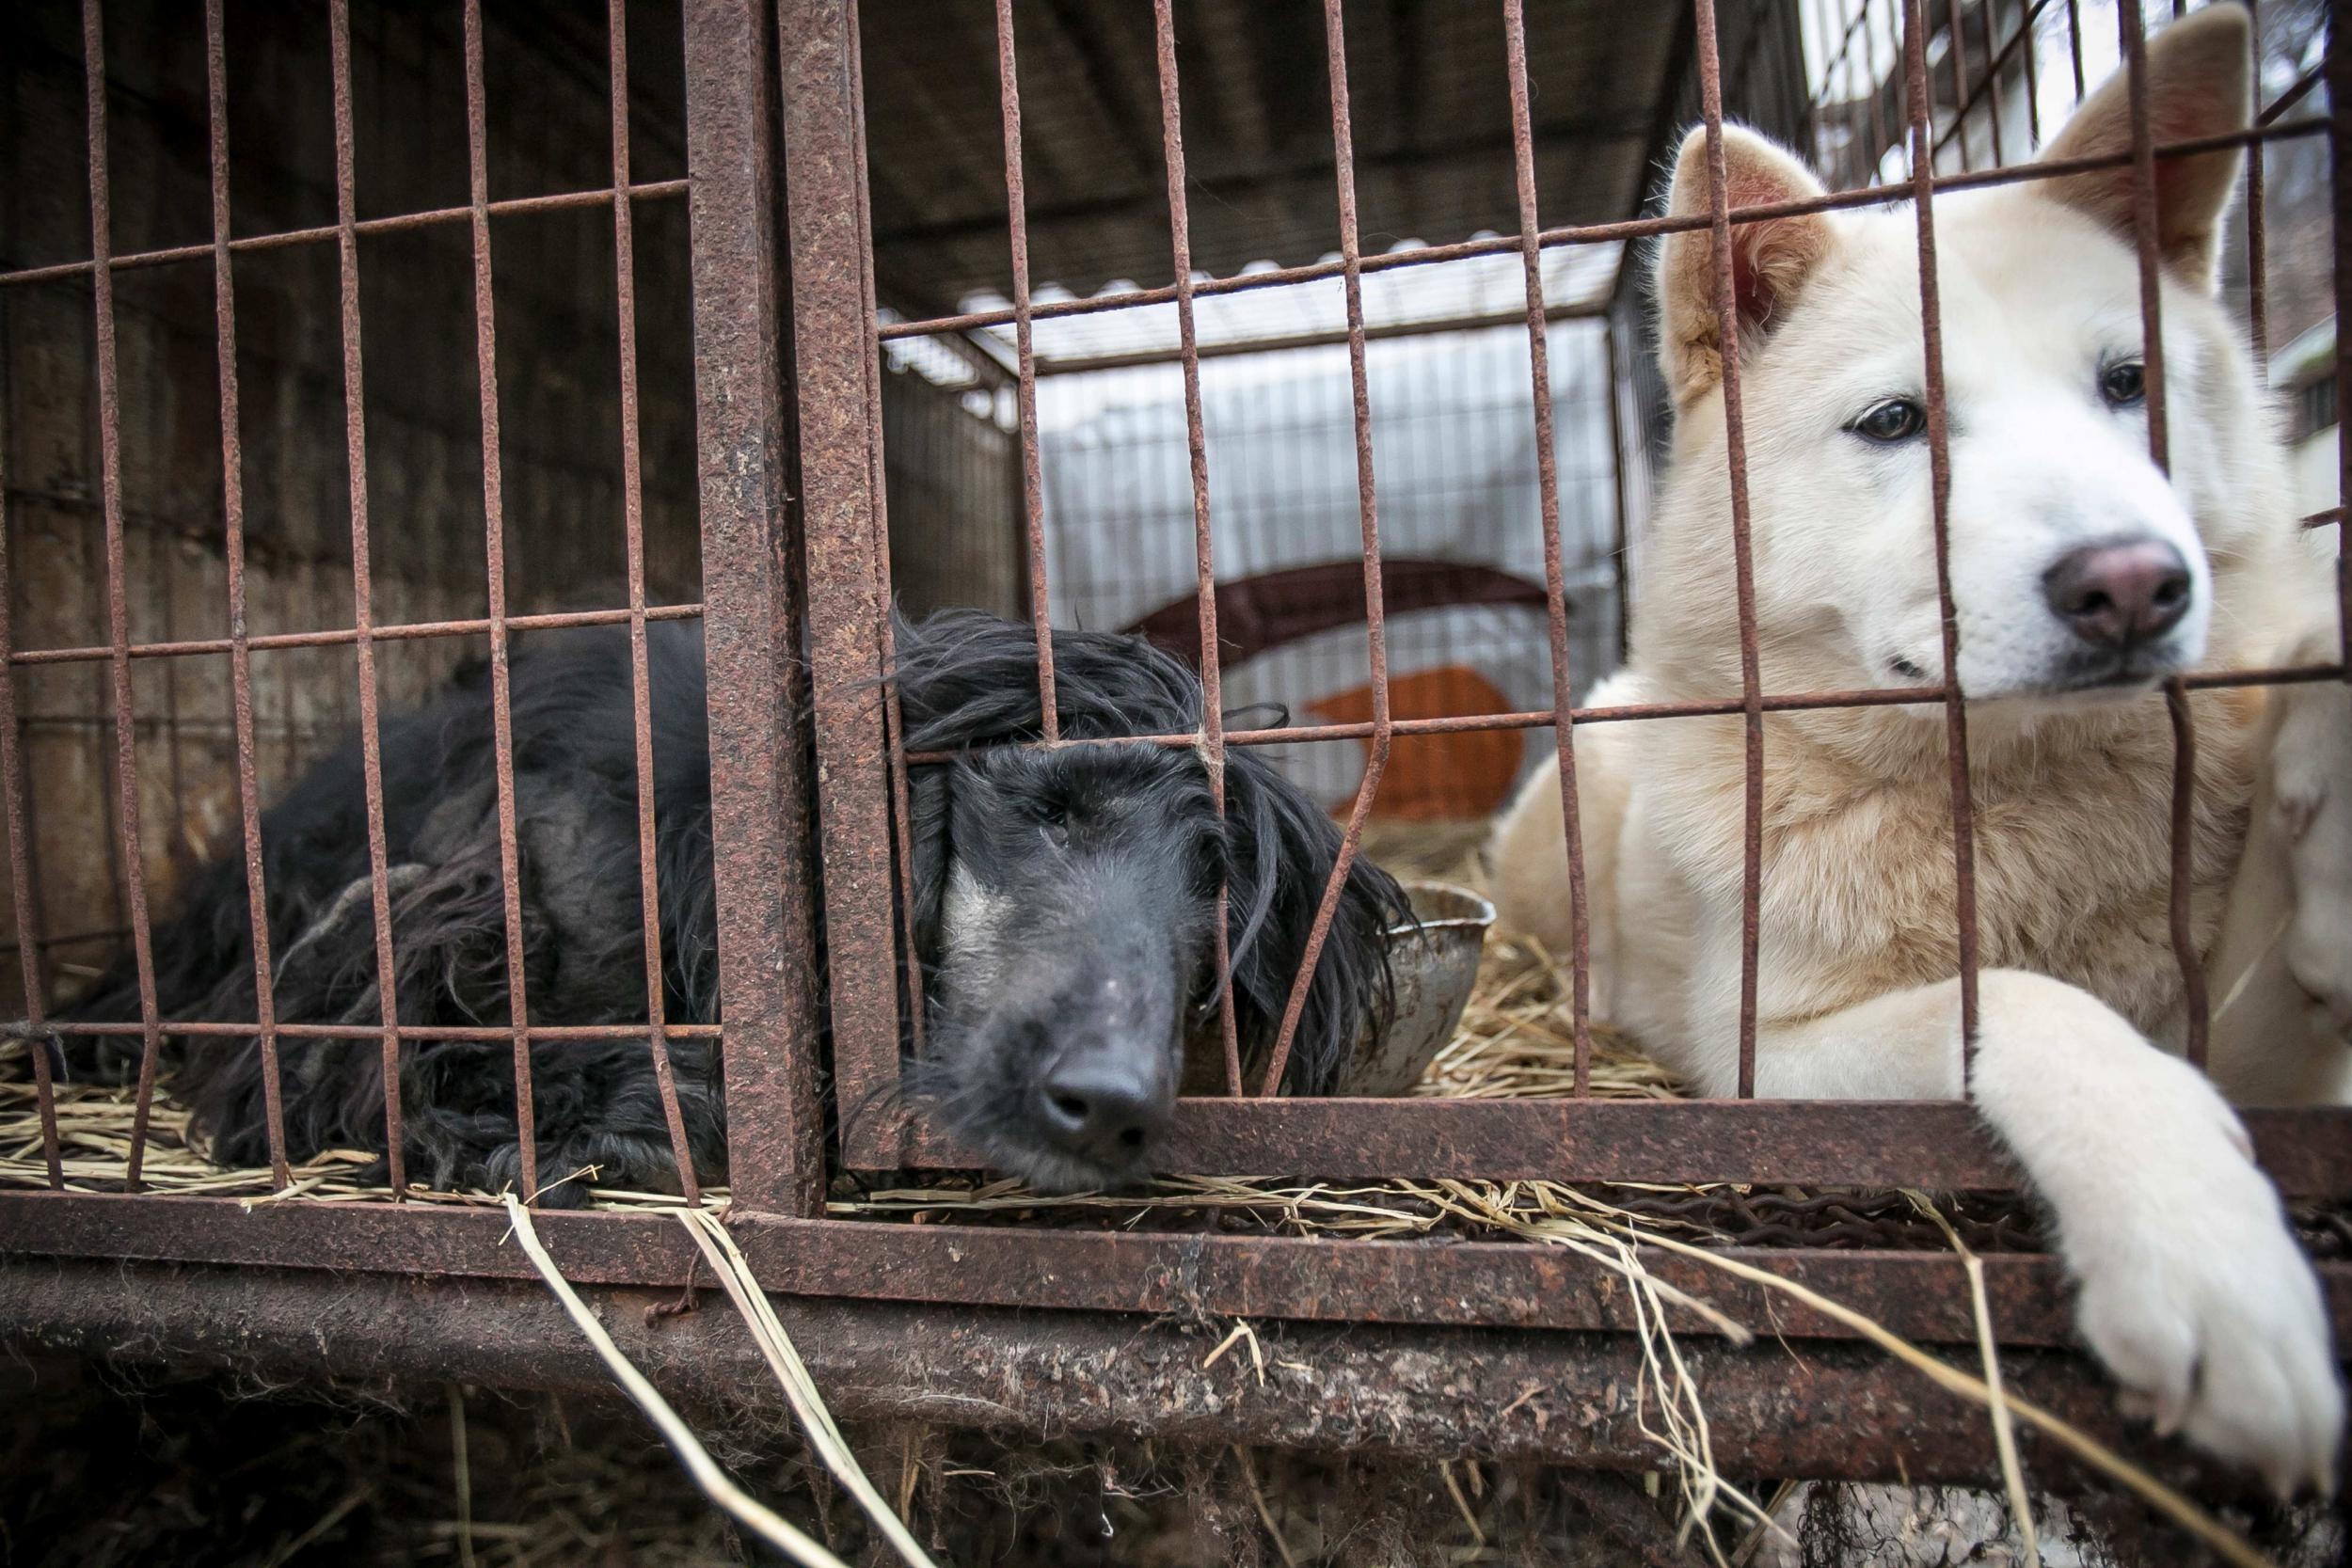 More than 170 dogs rescued from 'atrocious' canine meat farm in South Korea